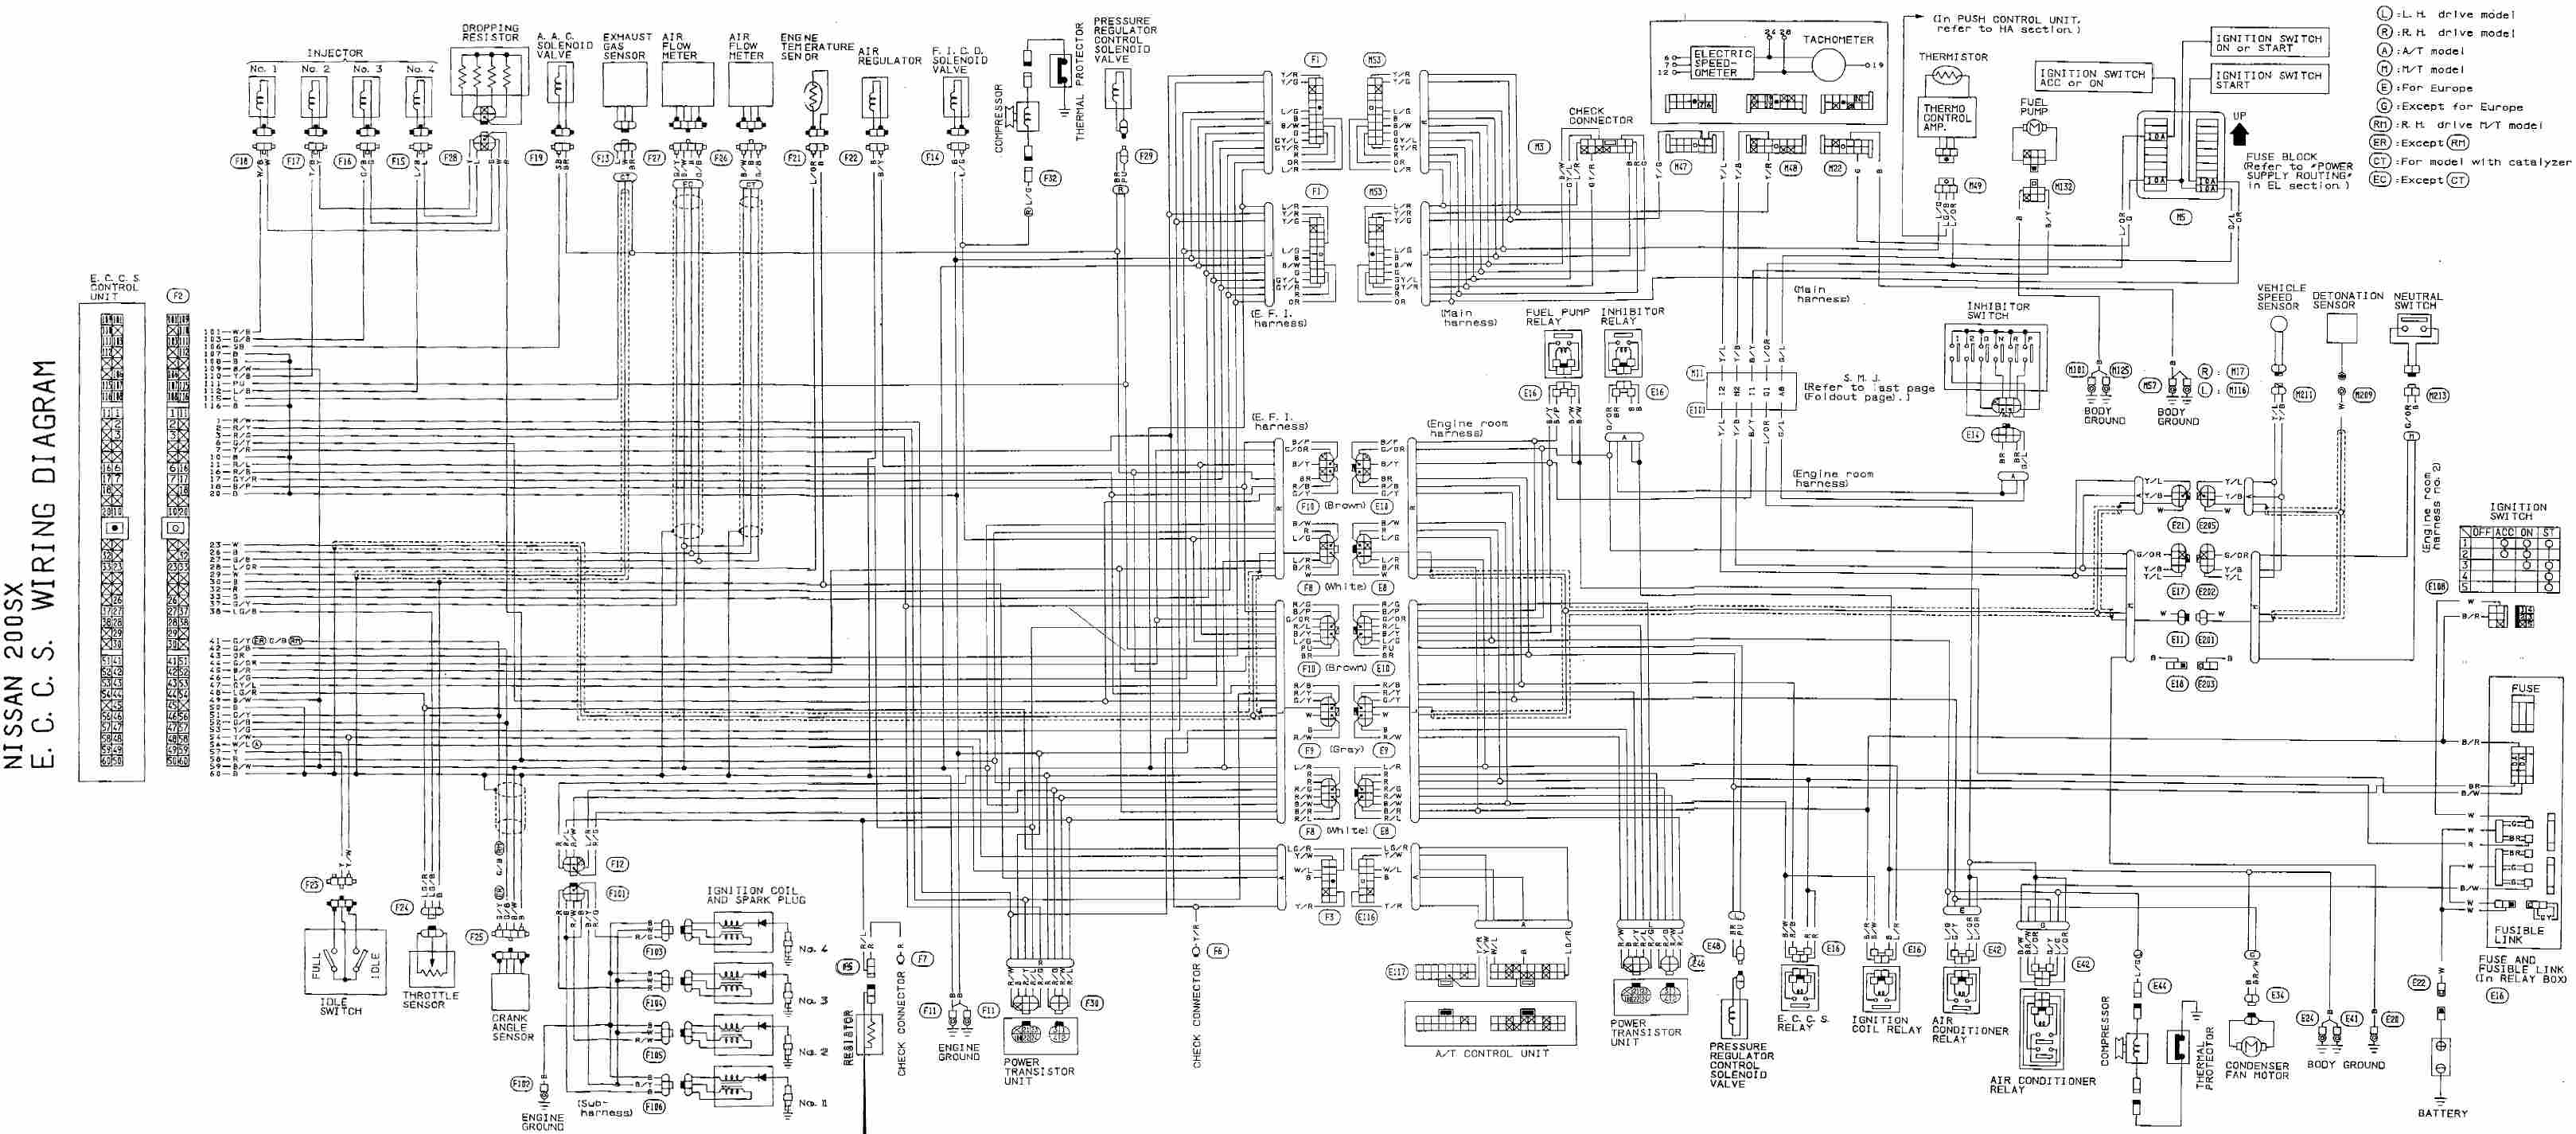 300zx Wiring Diagram | Wiring Liry on 1996 cadillac wiring diagram, 1962 cadillac wiring diagram, 1970 cadillac wiring diagram, 1991 cadillac parts catalog, 1963 cadillac wiring diagram, 1991 cadillac engine problems, 1959 cadillac wiring diagram, 1941 cadillac wiring diagram, 1956 cadillac wiring diagram, 1964 cadillac wiring diagram,